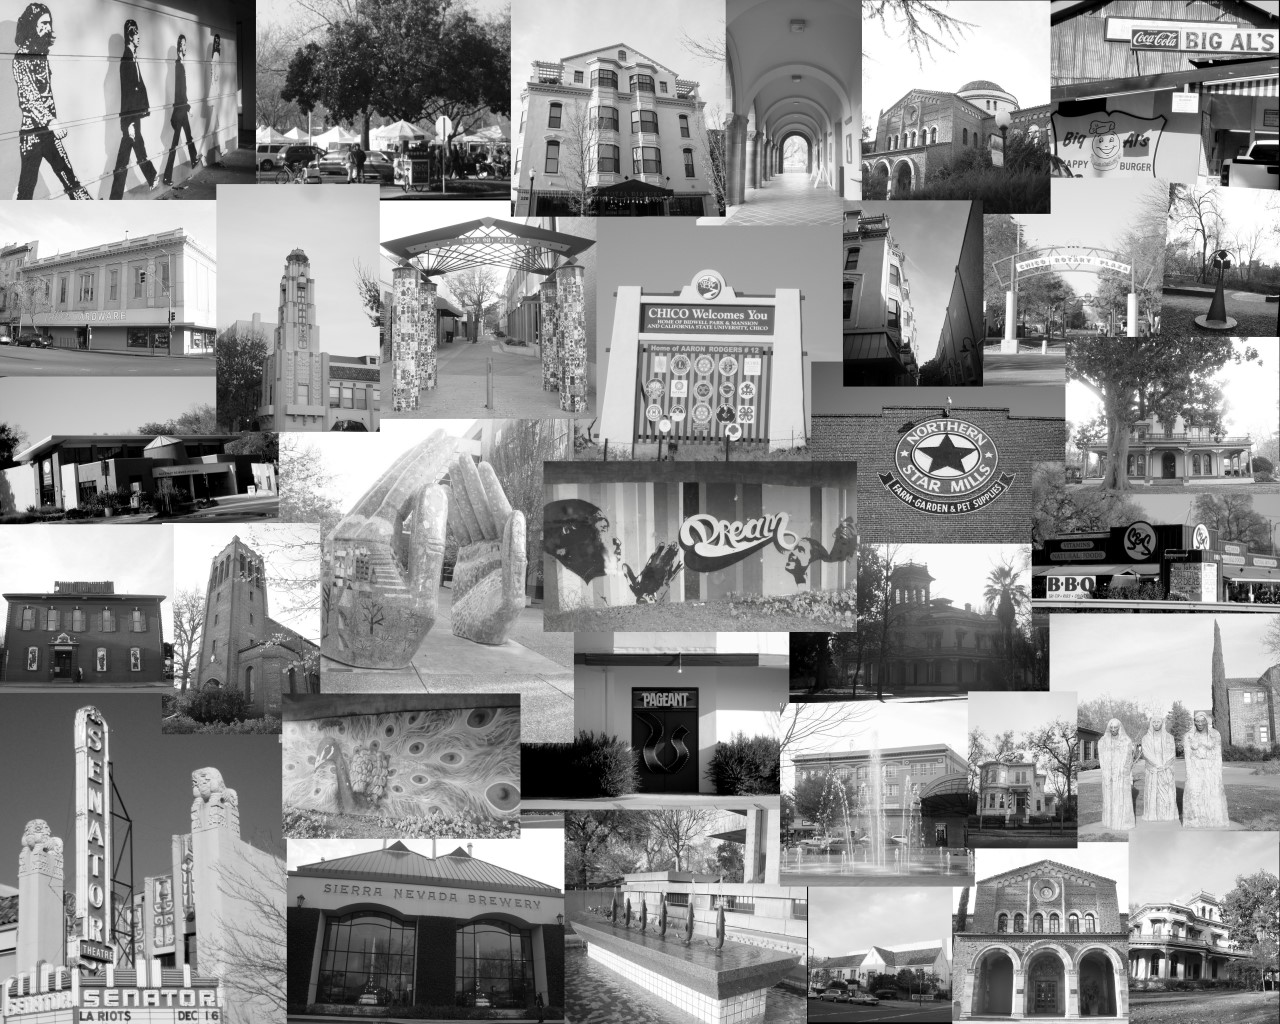 Collage of places in Chico